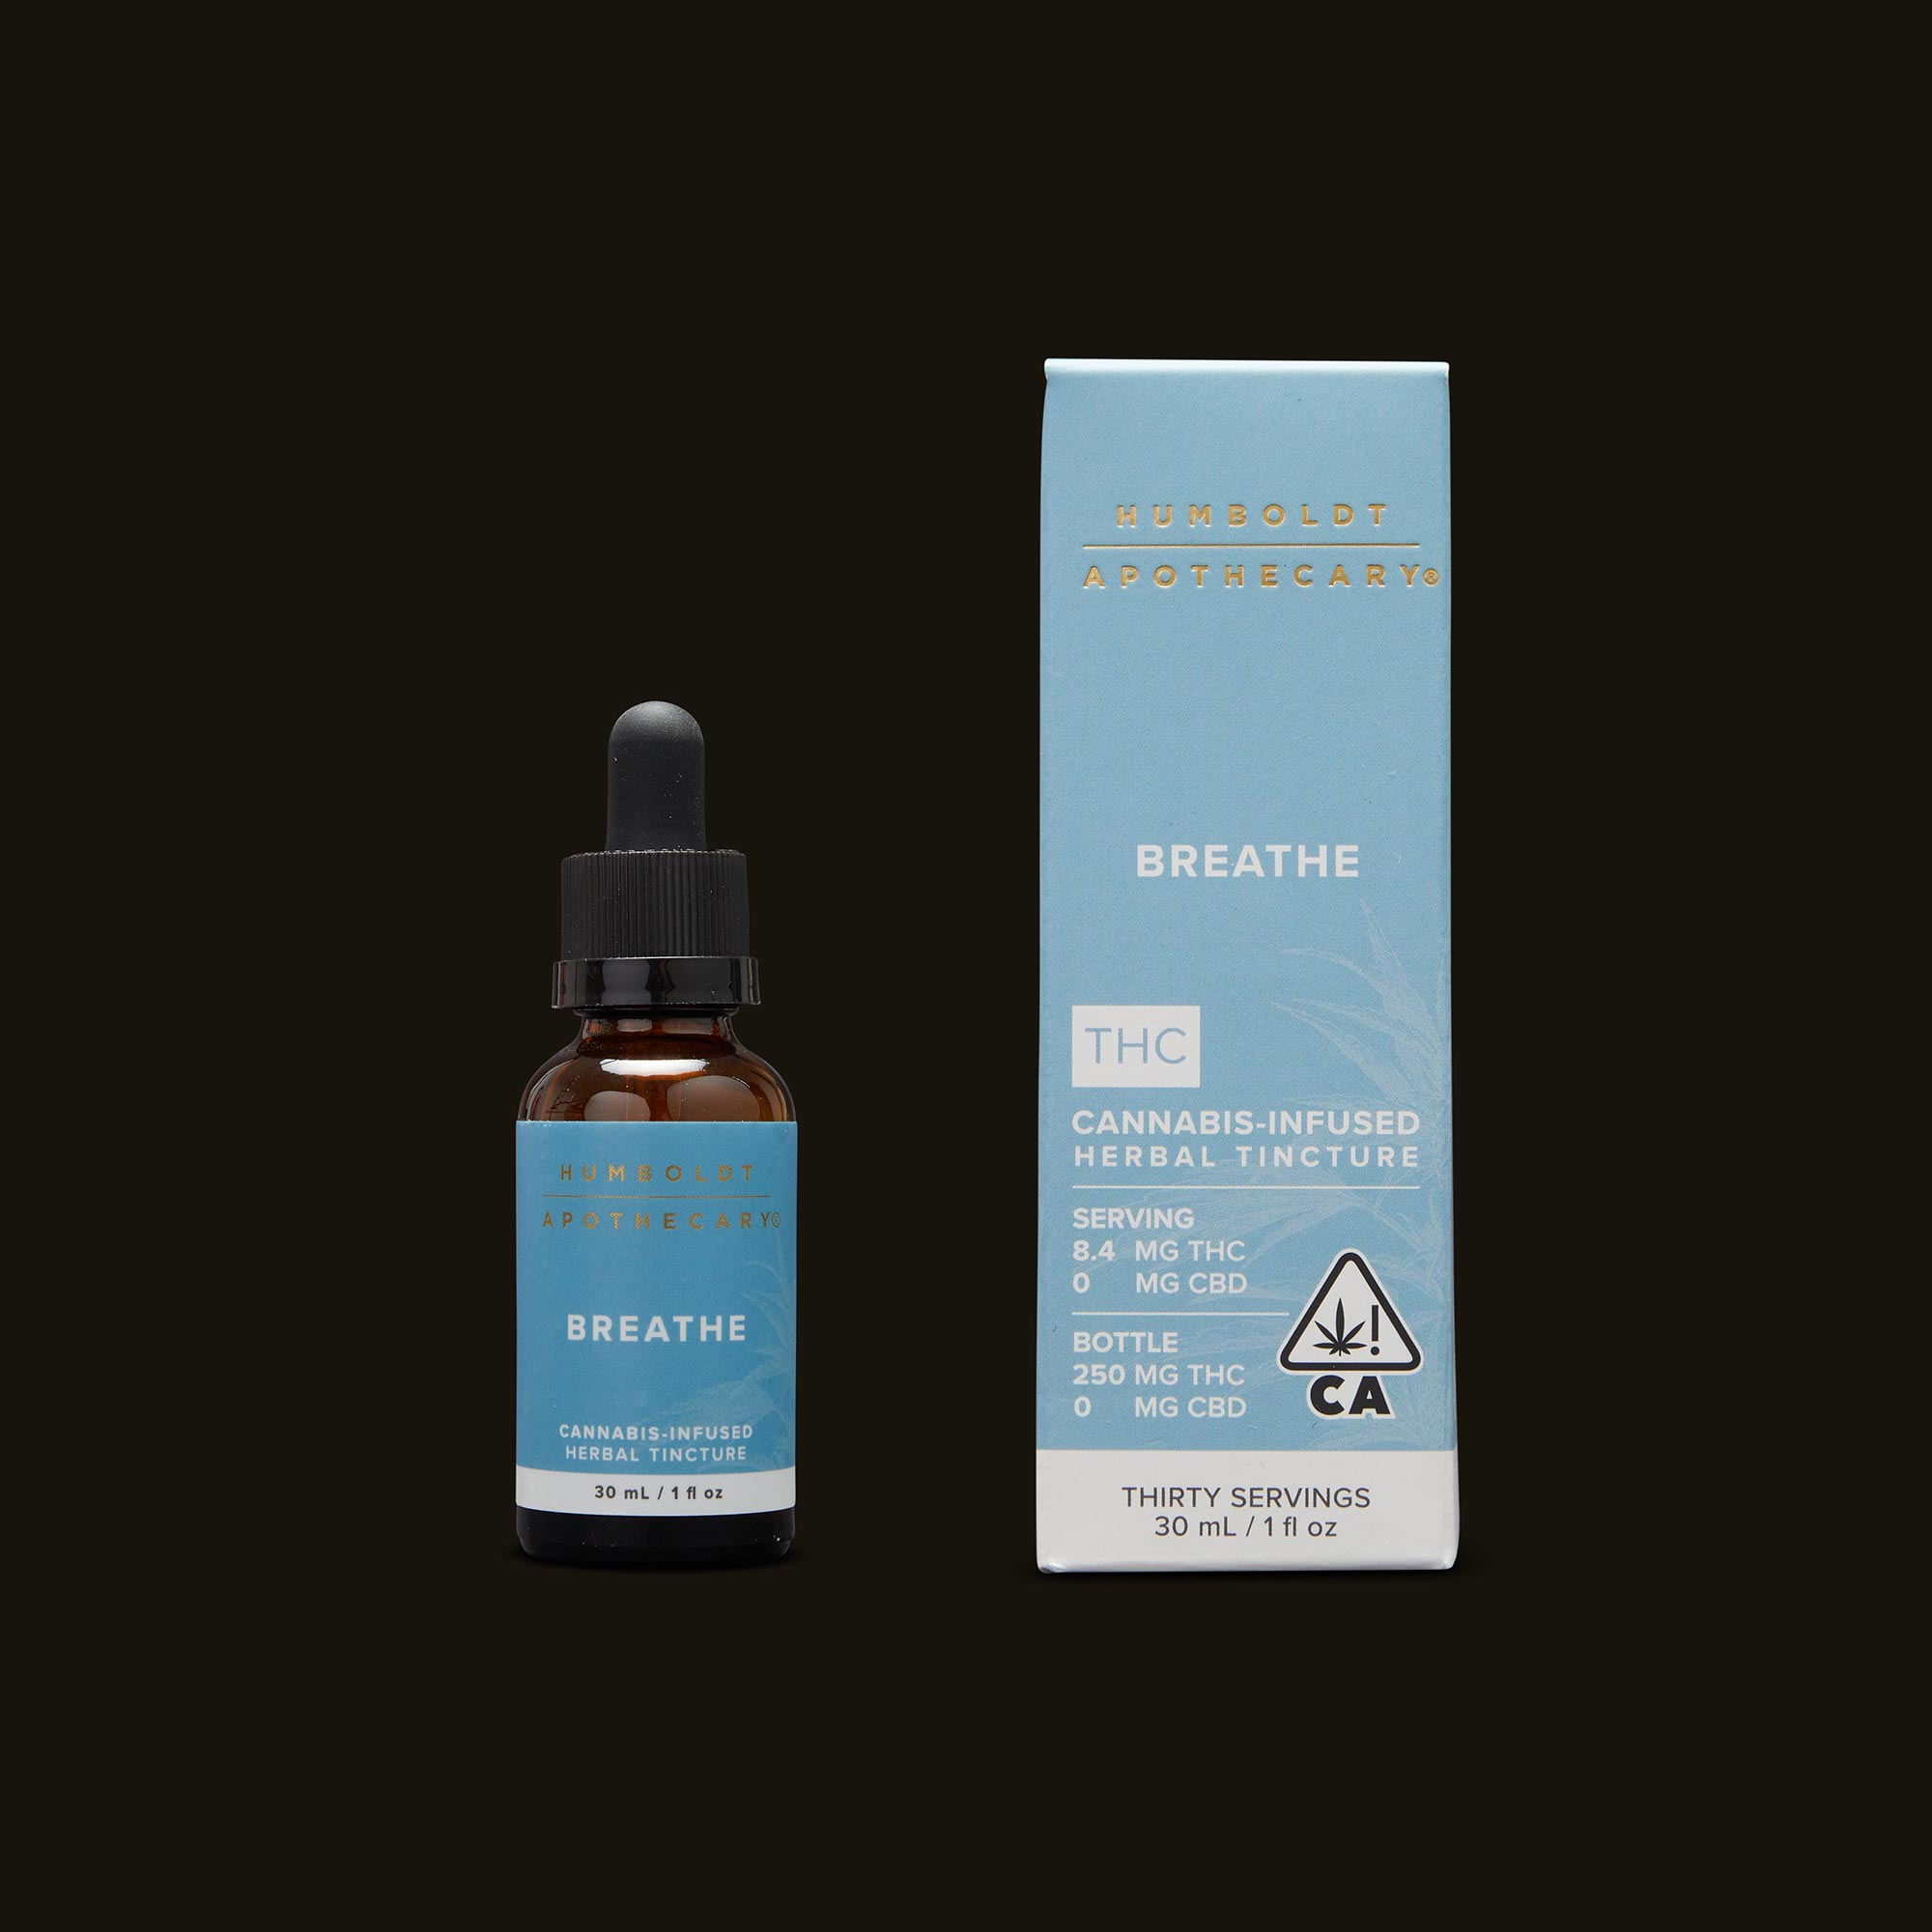 Humboldt Apothecary Breathe Tincture and Packaging